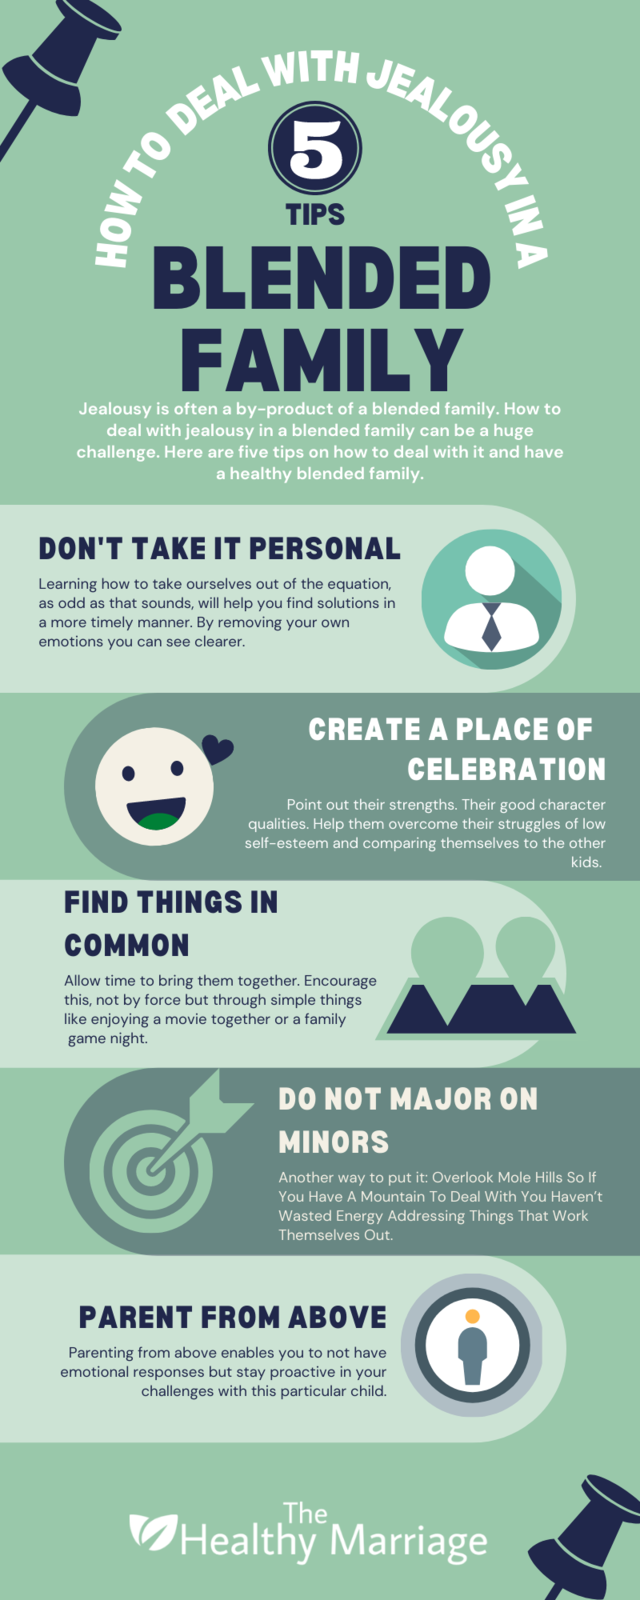 5 Tips on How To Deal With Jealousy in a Blended Family Infographic